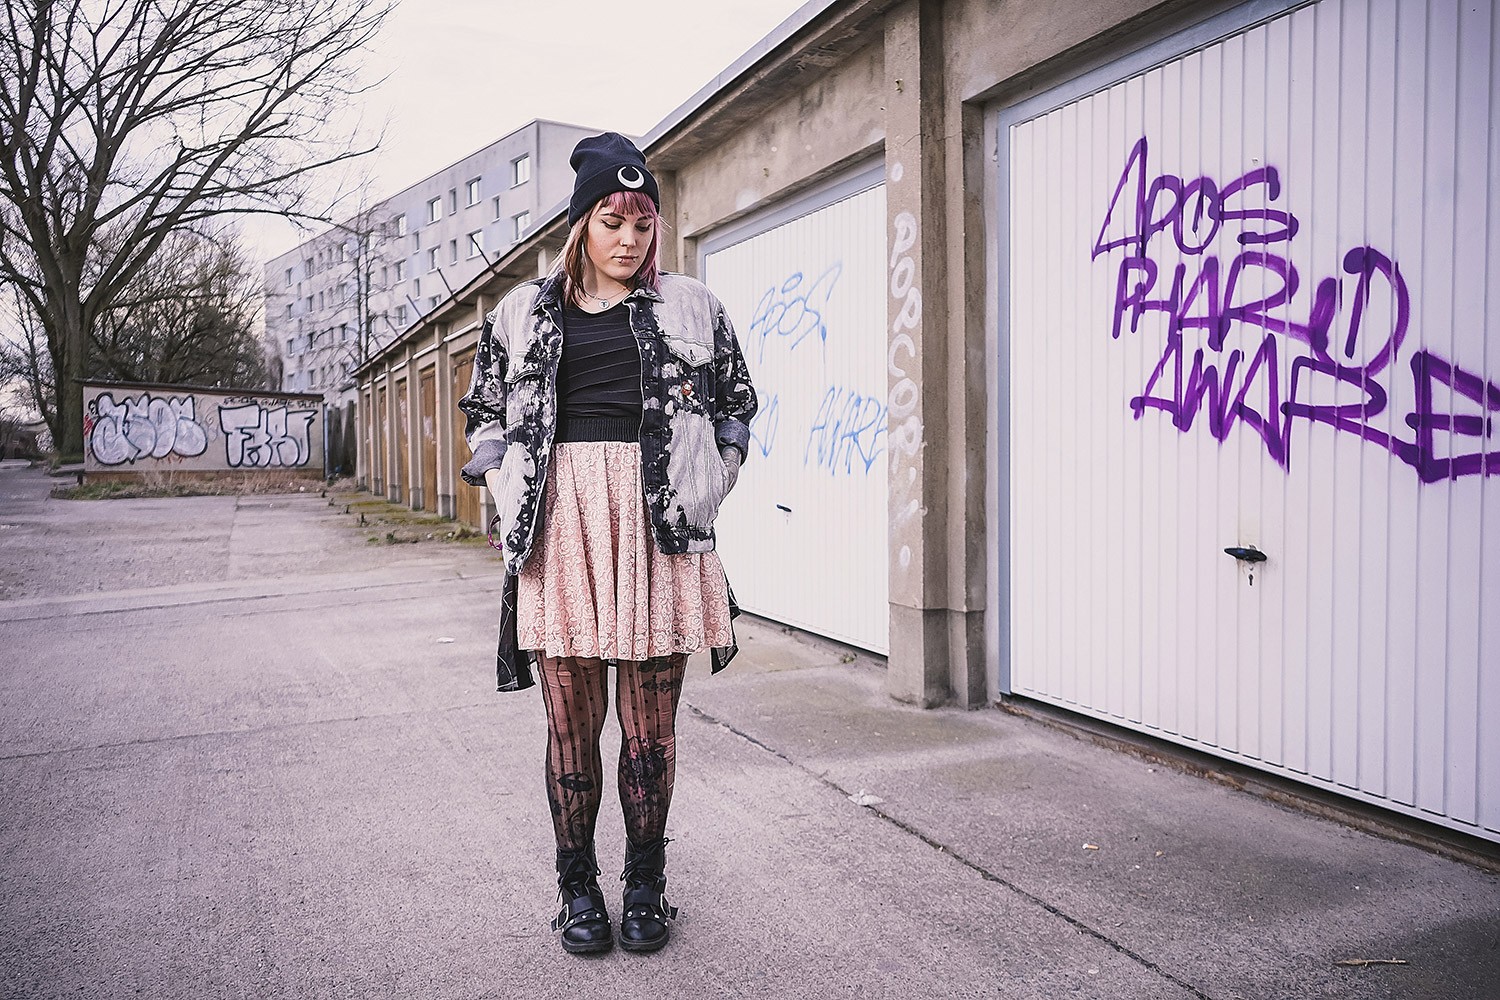 Strumpfhose, punkte, zerrissen, used, kimono, transparent, spitze, rock, Minirock, Spitzenrock, acid wash, Bleichflecken, bleiche, h&m, Jeansjacke, denim jacket, diy, luna beanie, Mütze, killstar, rosa haare, tattoos, evoli tattoo, pokemon tattoo, chris stockings, alternative, alternative fashion, alternative girl, alternative mode, altgirl, berlin, berlin fashion, berlin fashion blogger, berlin mode, berlin streetstyle, blogger, fashion blogger, girls with piercings, girls with tattoos, grunge, grunge fashion, grunge mode, mode, Punk, punk fashion, punk mode, punkgirl, punkmädchen, scenehair, snakebites, split hair, splithair, tattoomädchen, tattoomodel